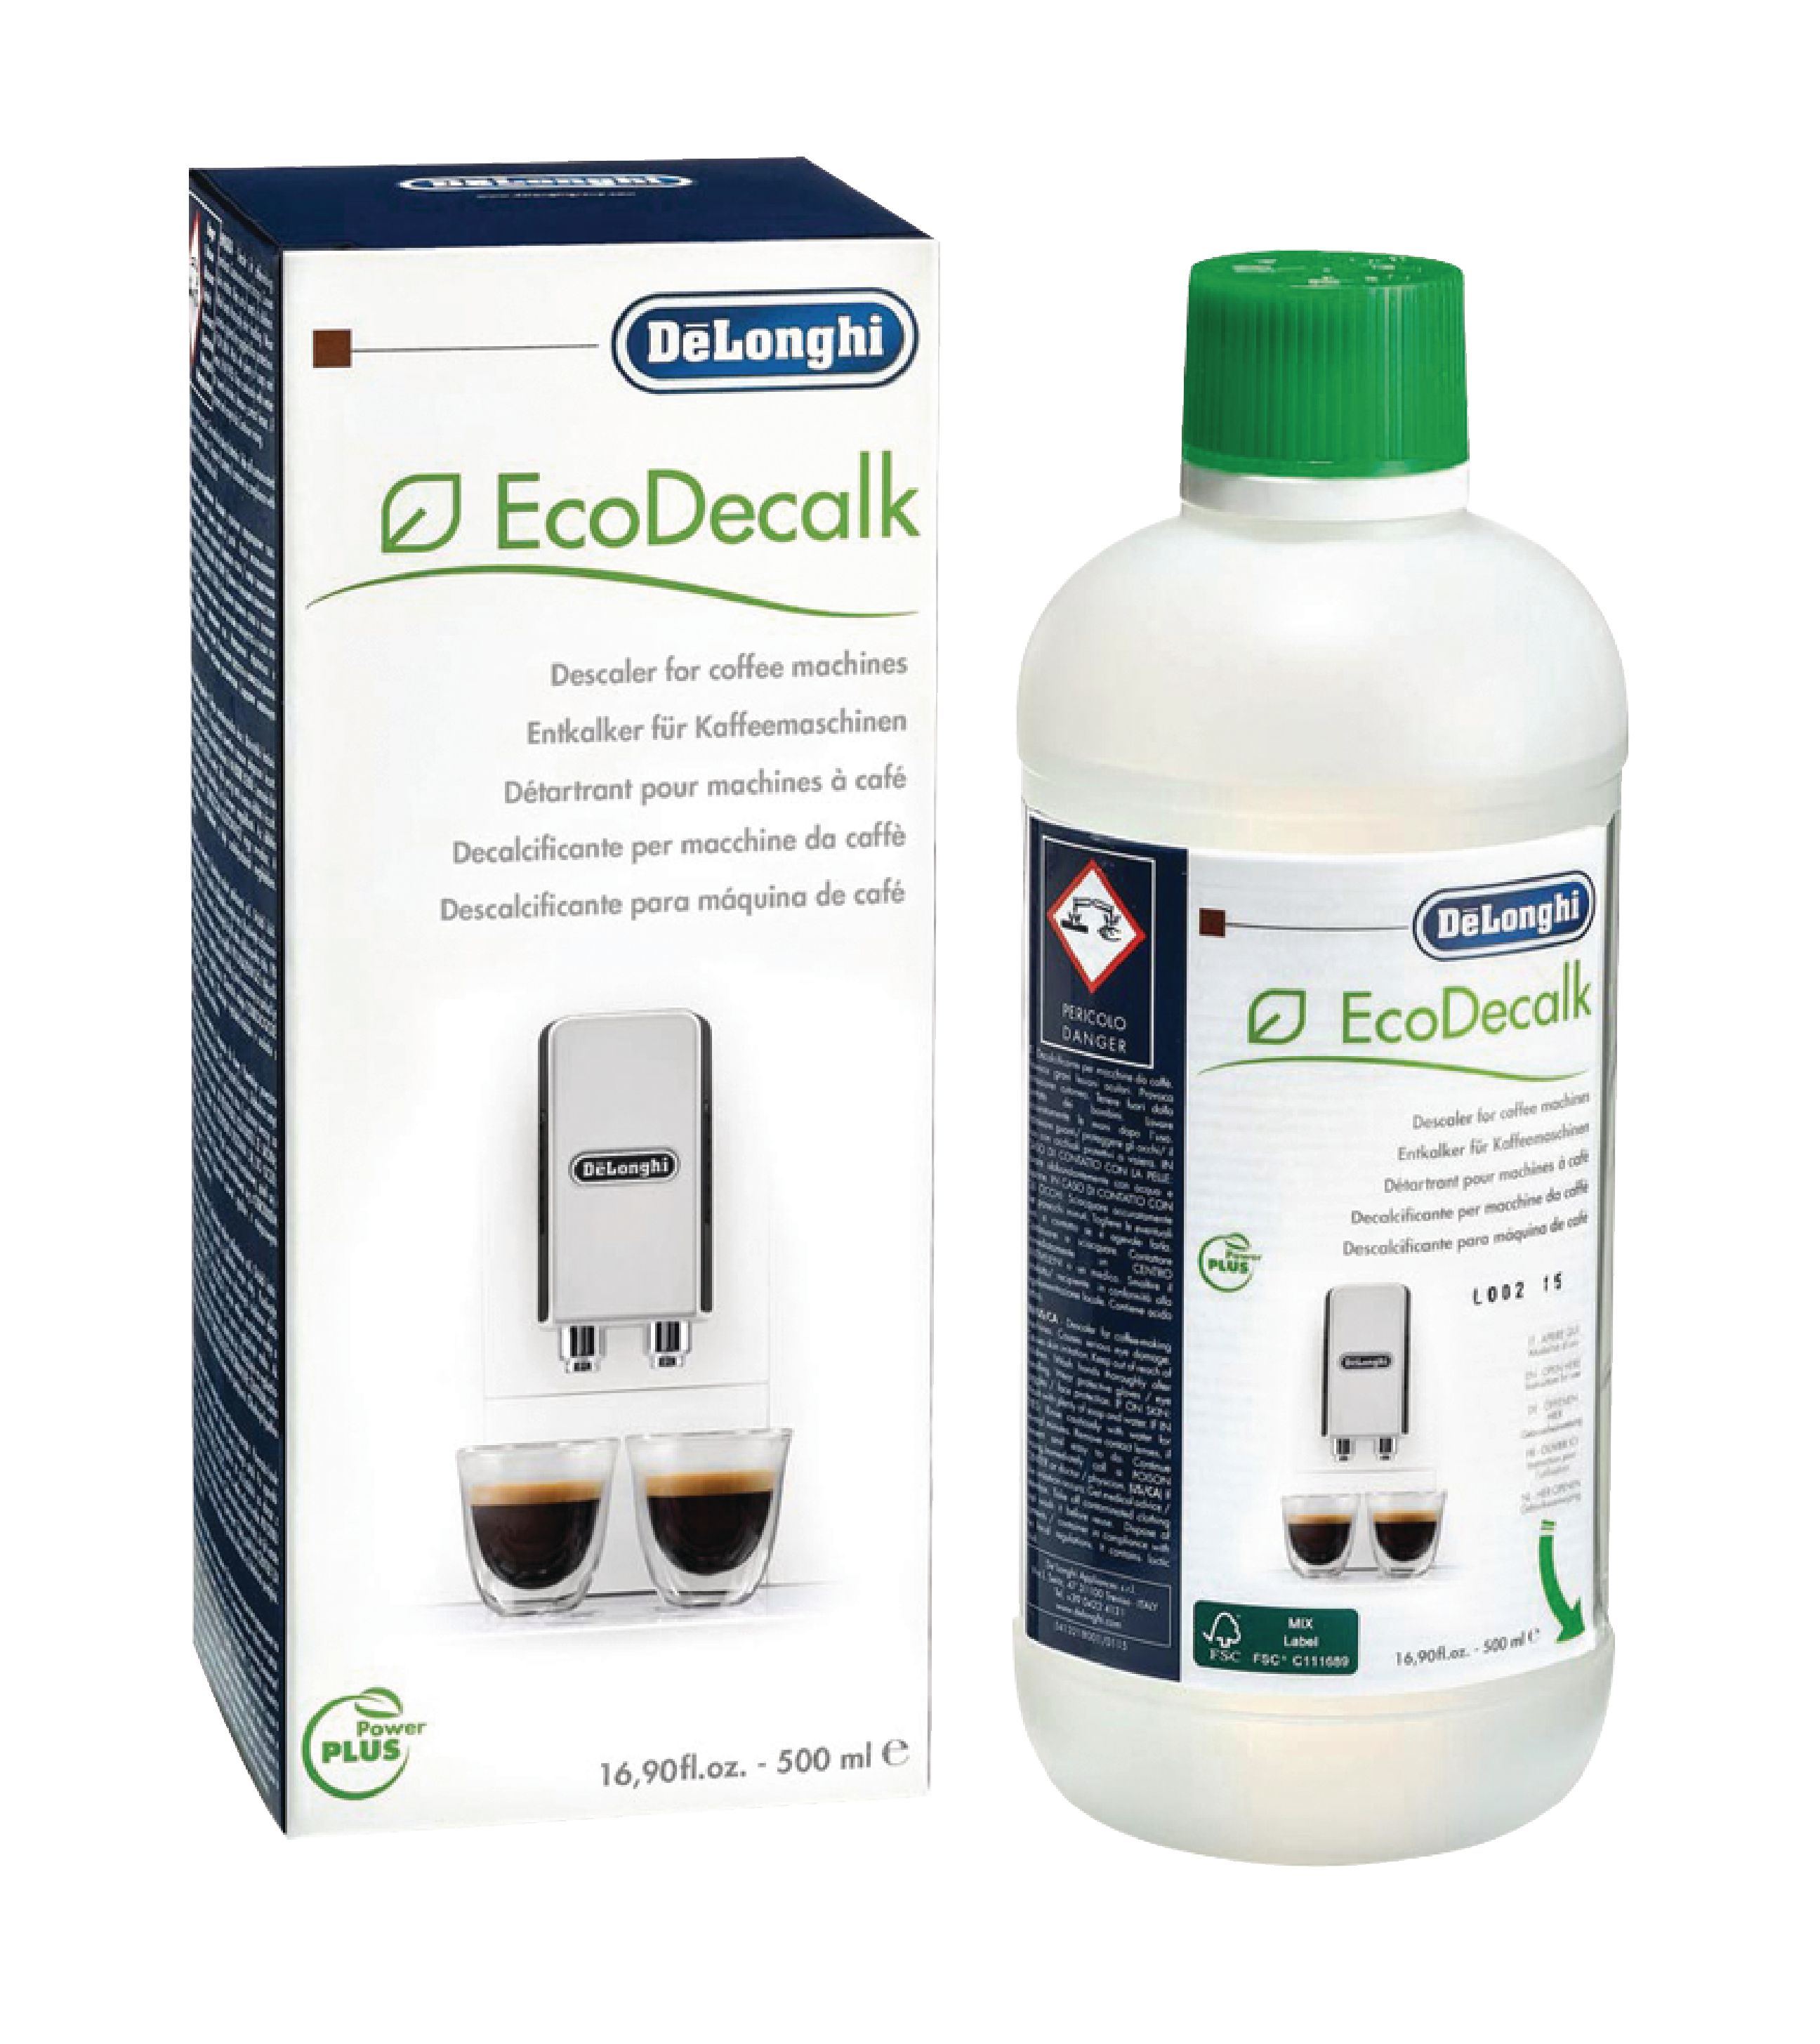 Odvápňovač Eco Decalc 500 ml, DeLonghi 5513296041